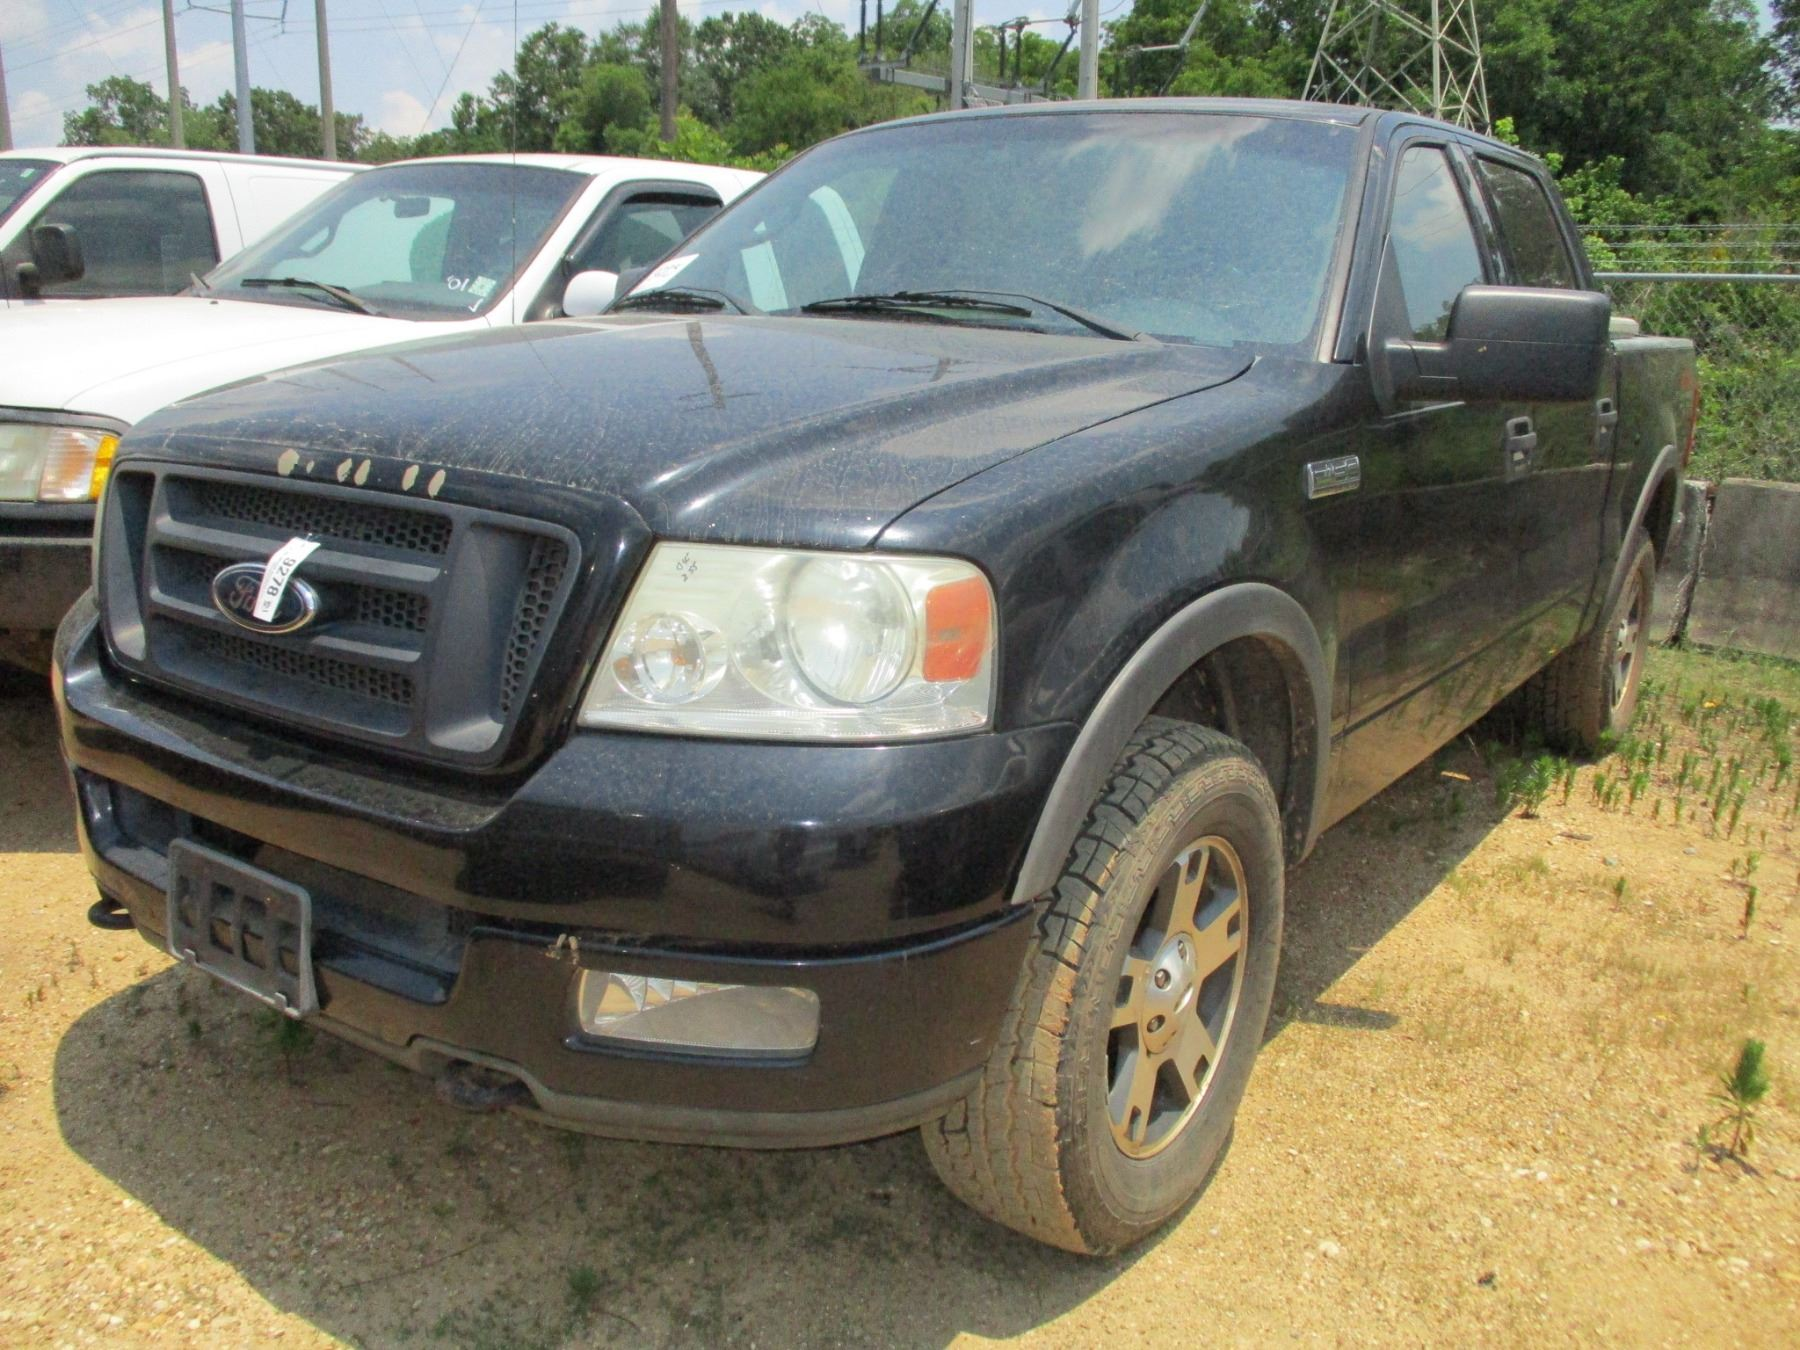 image 1 2004 ford f150 fx4 pick up vin sn 1ftpw14594kc30932  [ 1800 x 1350 Pixel ]